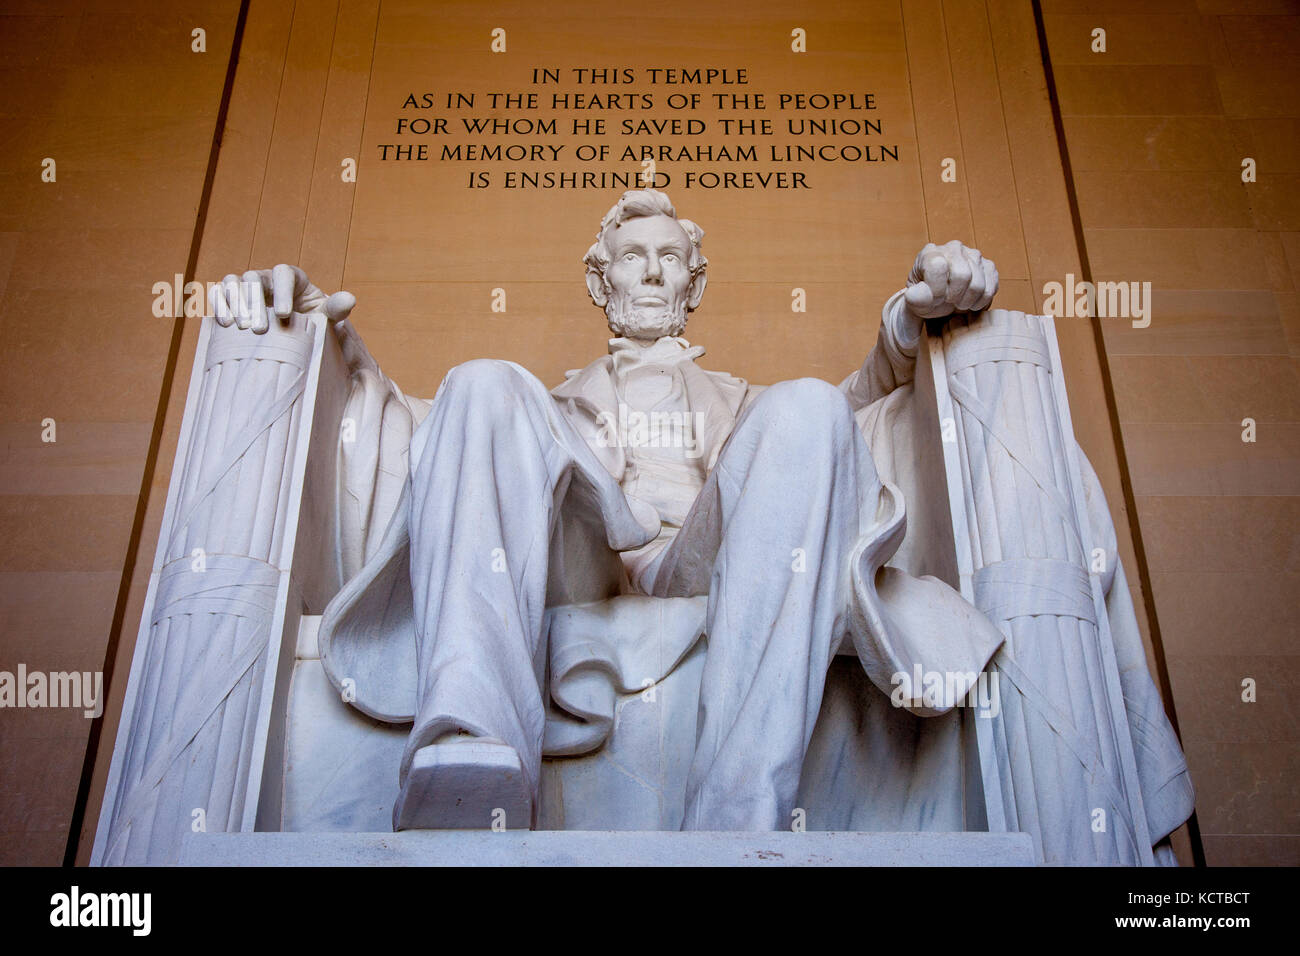 Marble statue of President Abraham Lincoln inside the Lincoln Memorial, Washington, DC, USA - Stock Image